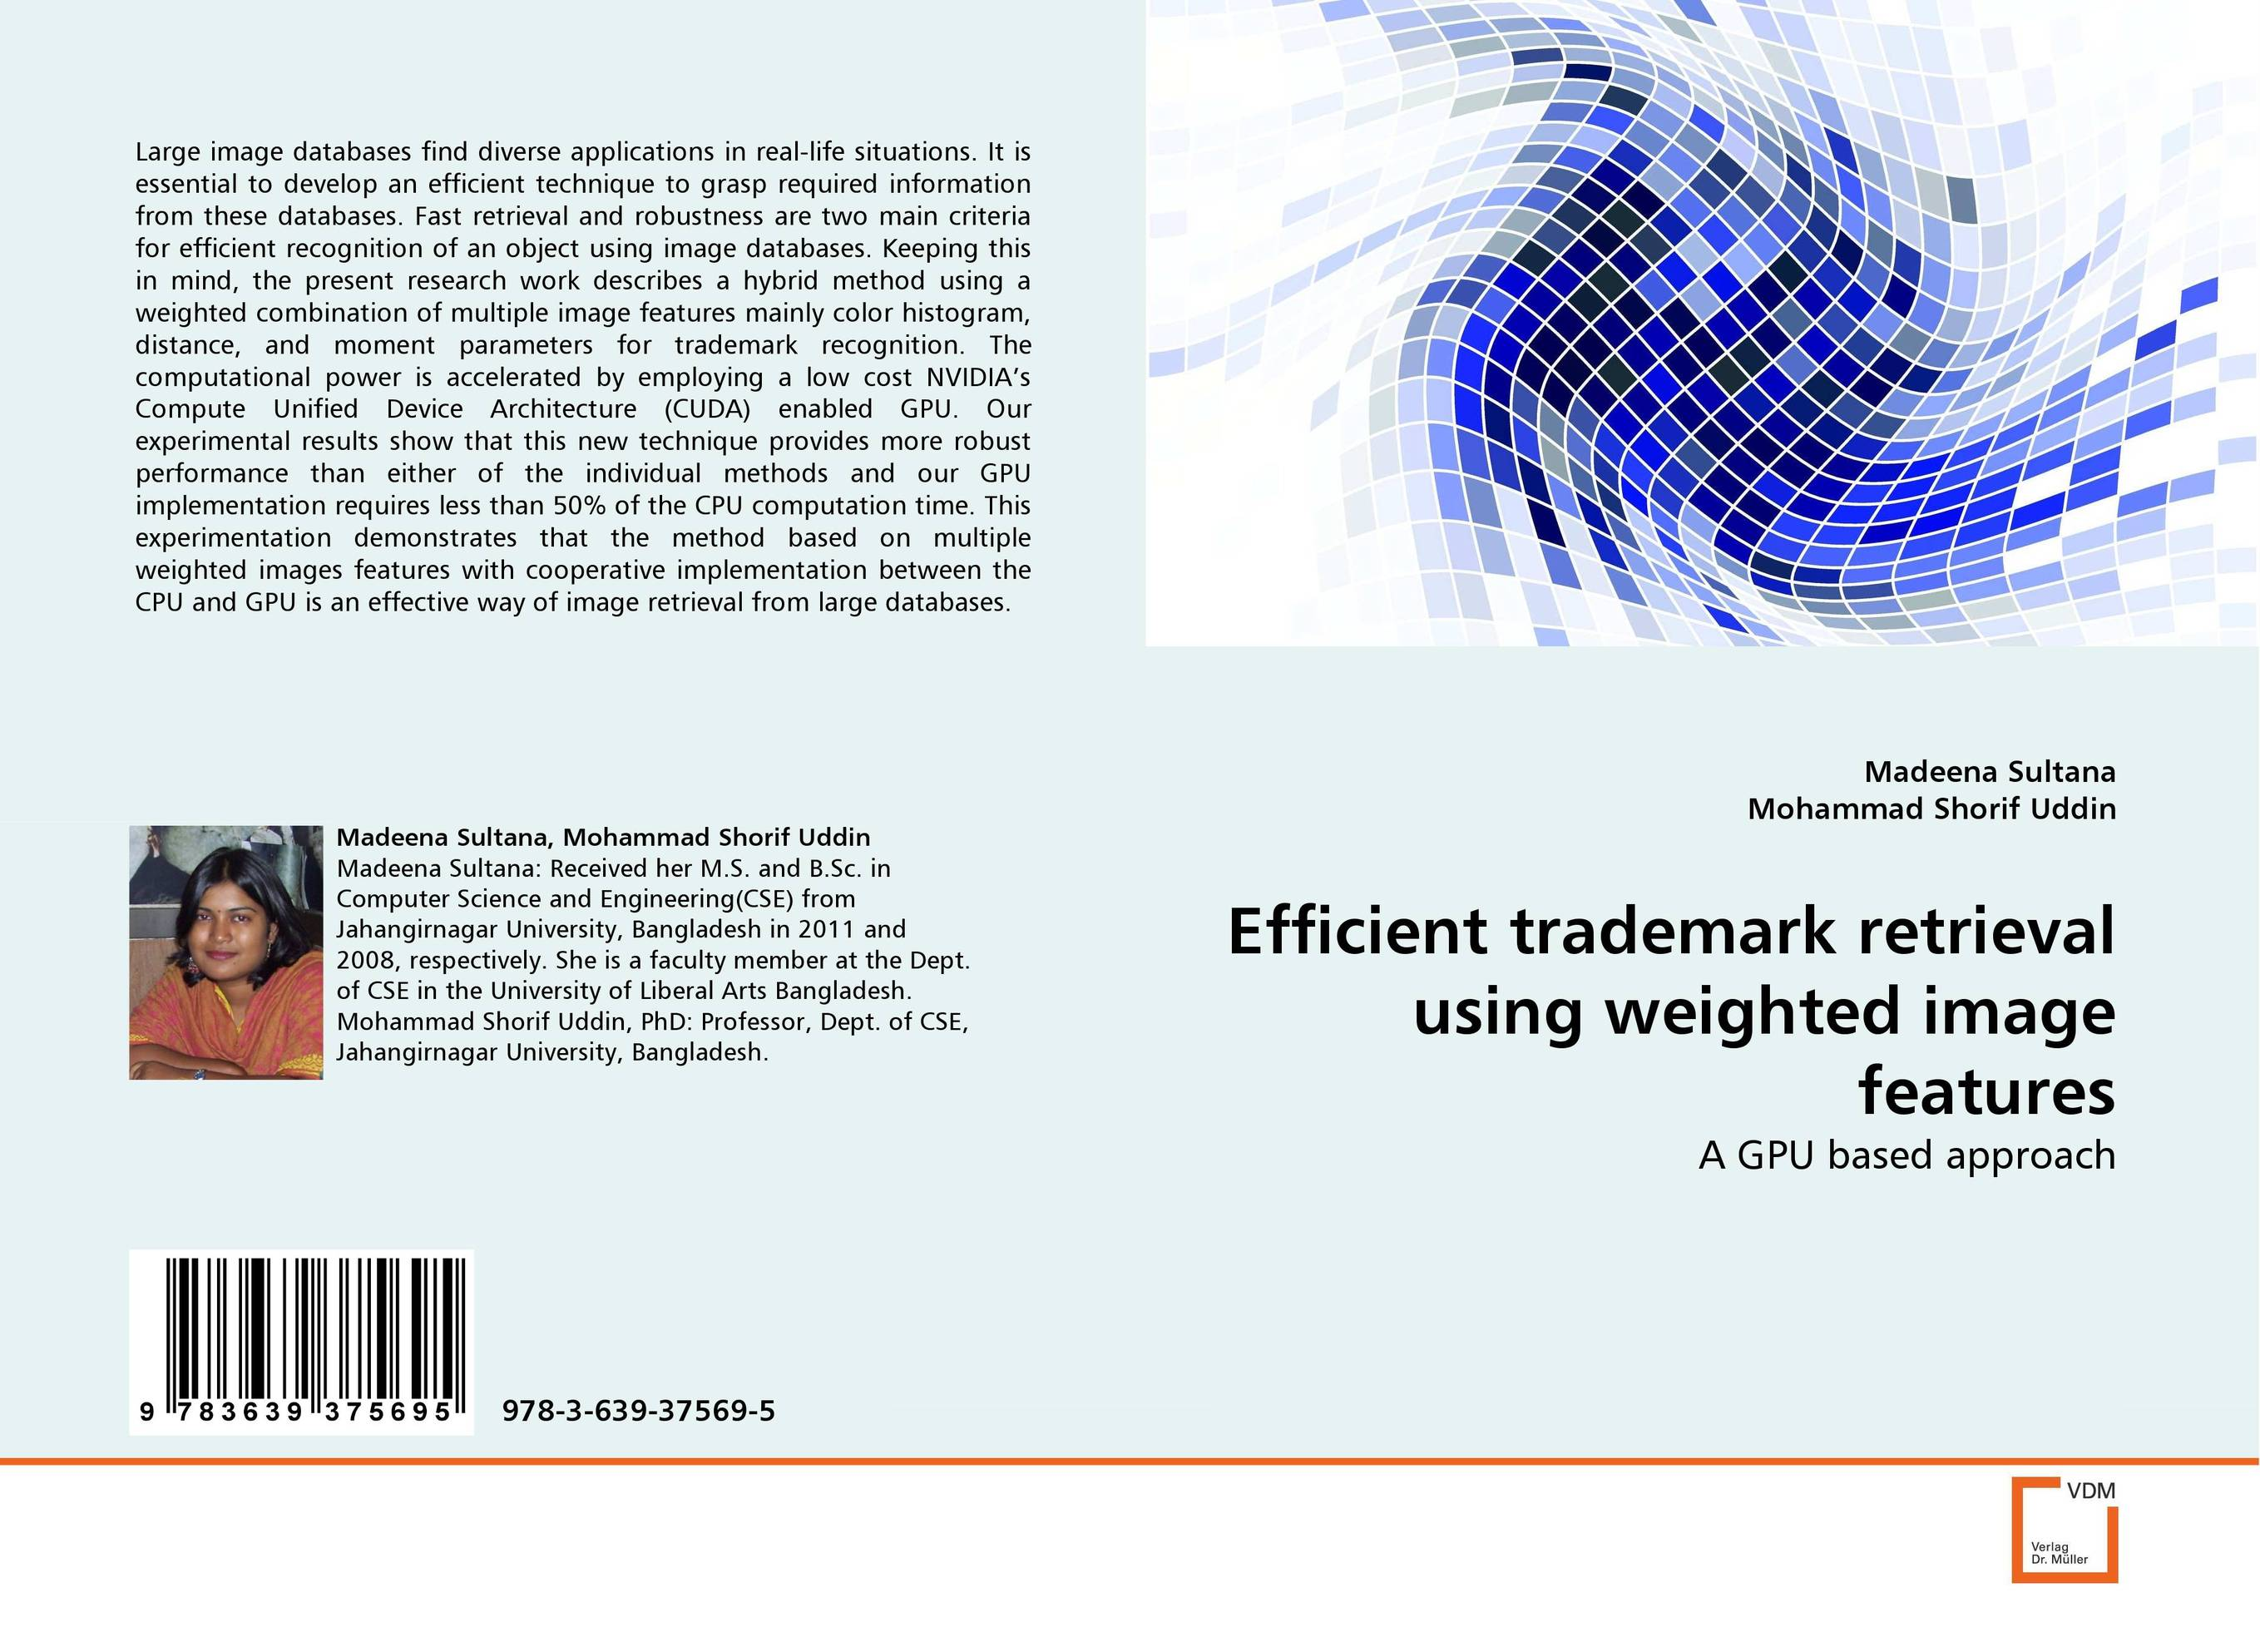 Efficient trademark retrieval using weighted image features